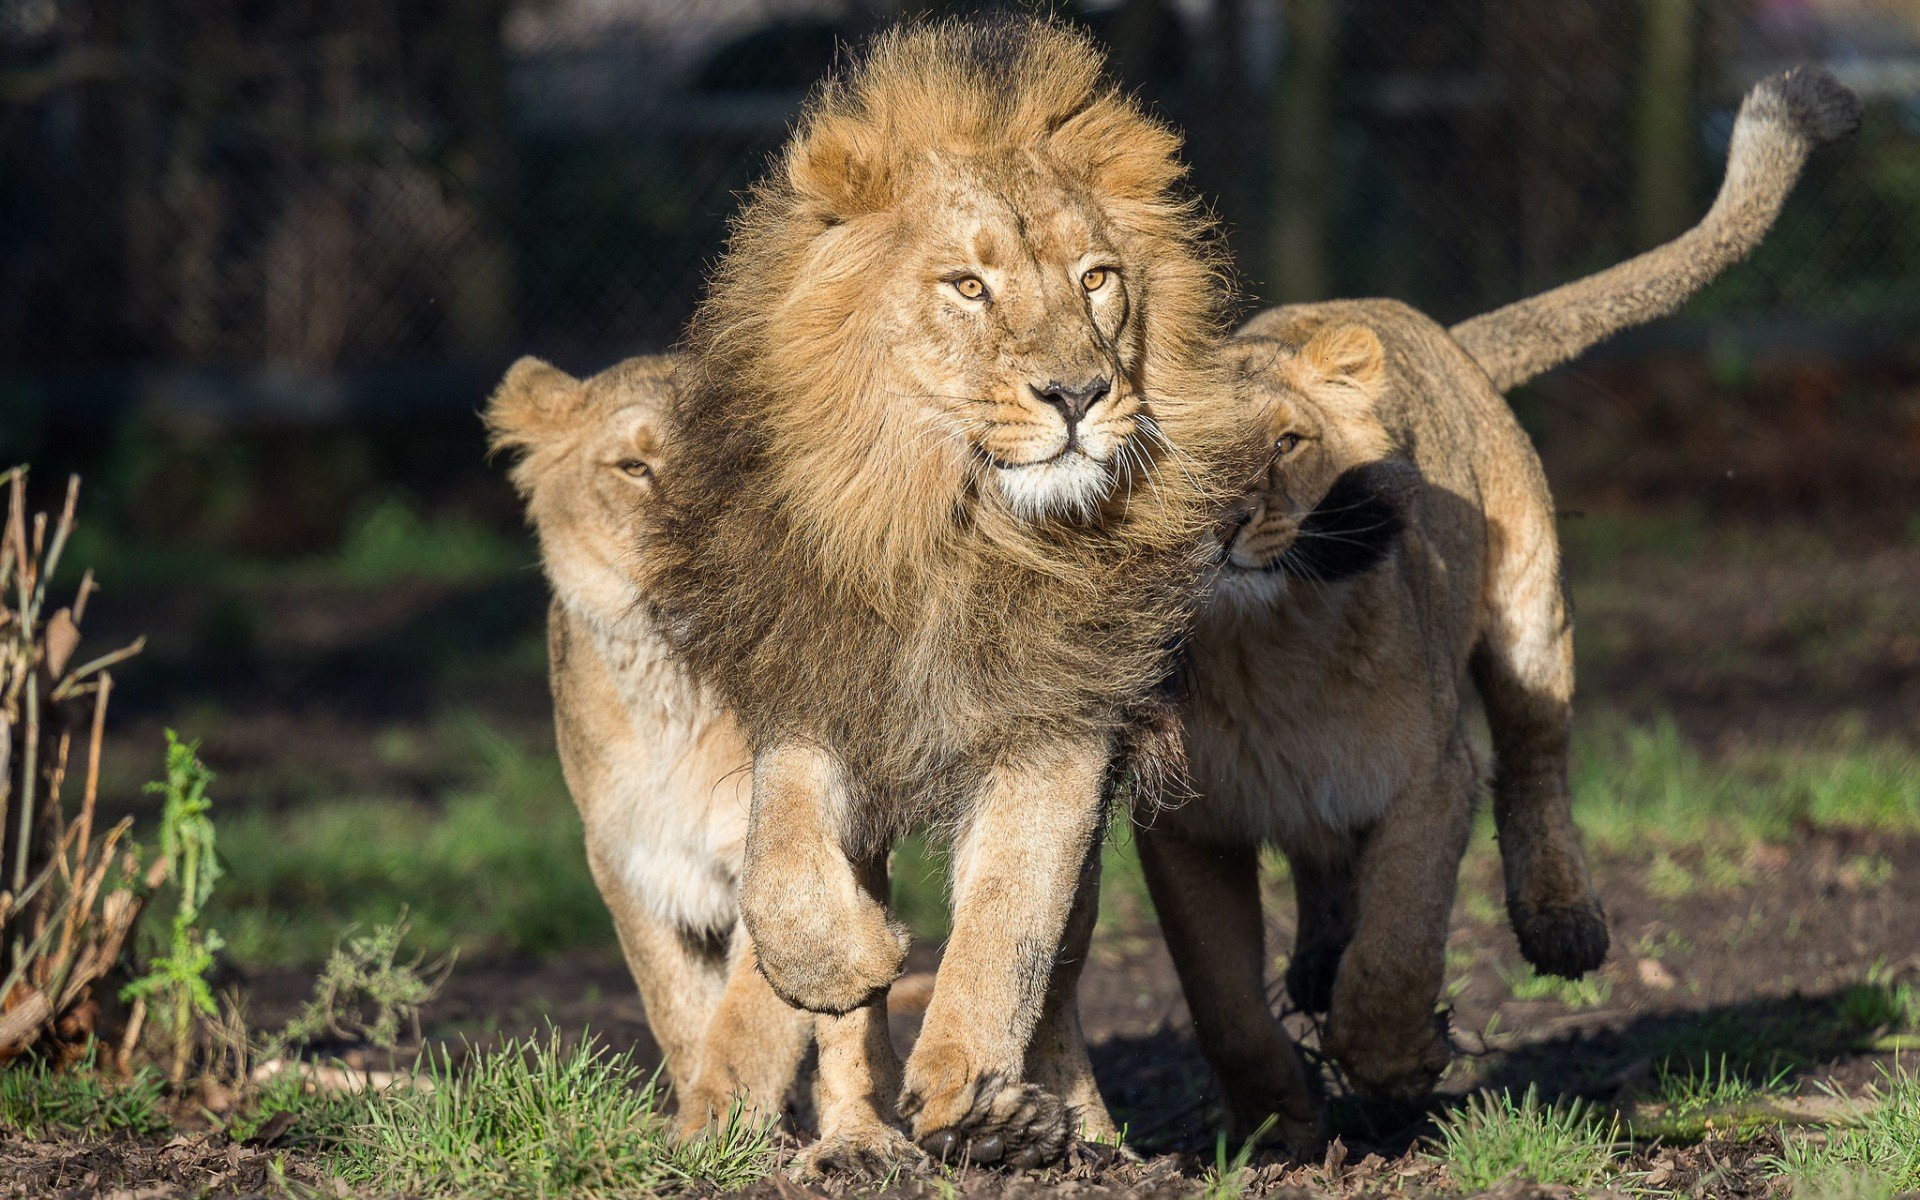 Animals Lion Wallpapers Hd Desktop And Mobile Backgrounds: Big Cats, Lion, Animals HD Wallpapers / Desktop And Mobile